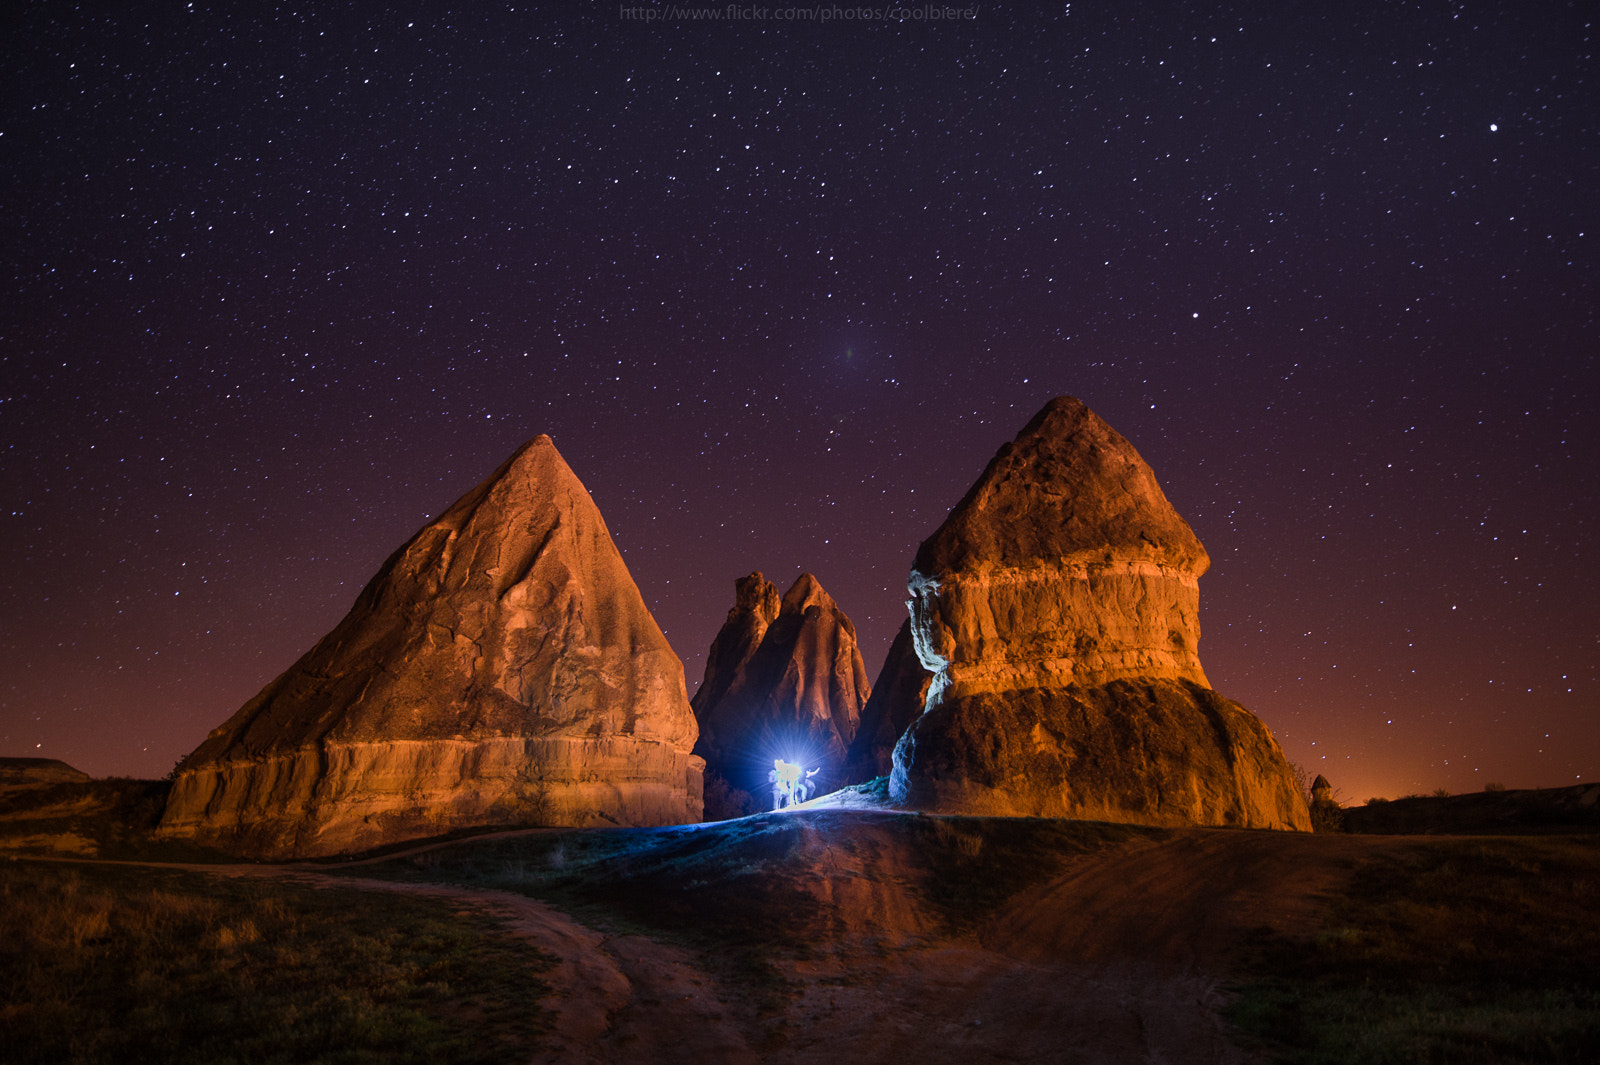 Photograph Mission to Mars by Coolbiere. A. on 500px